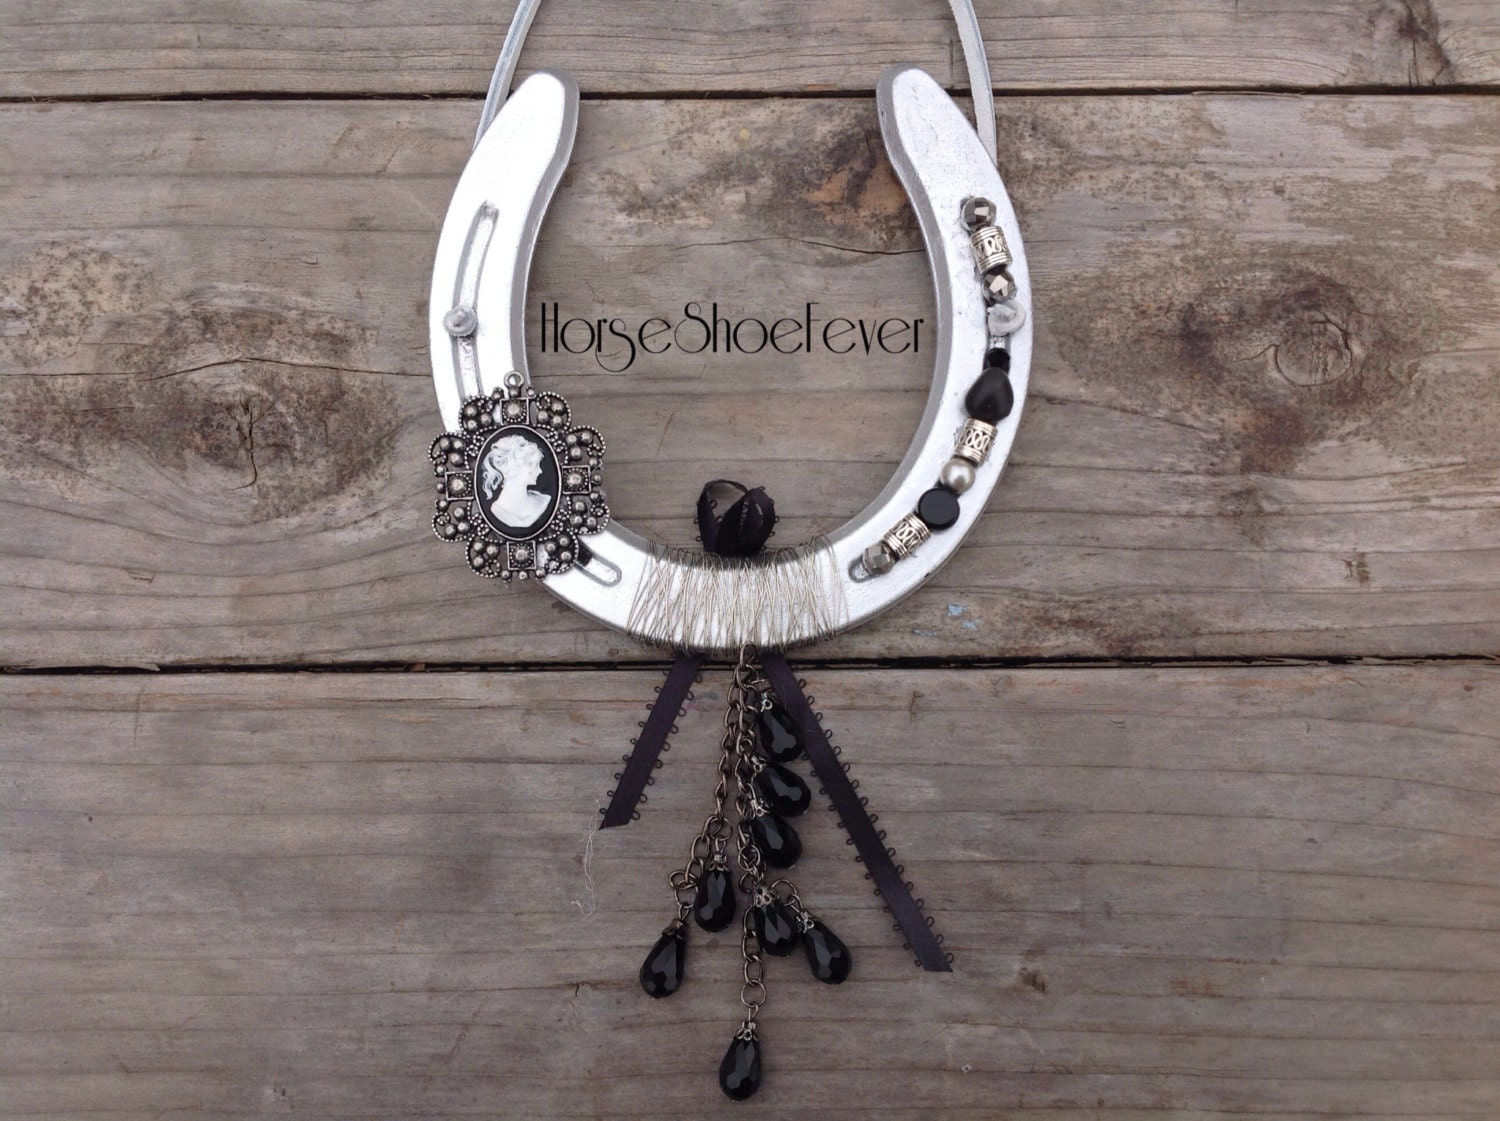 Horseshoe Art Decor And Home Country Wall